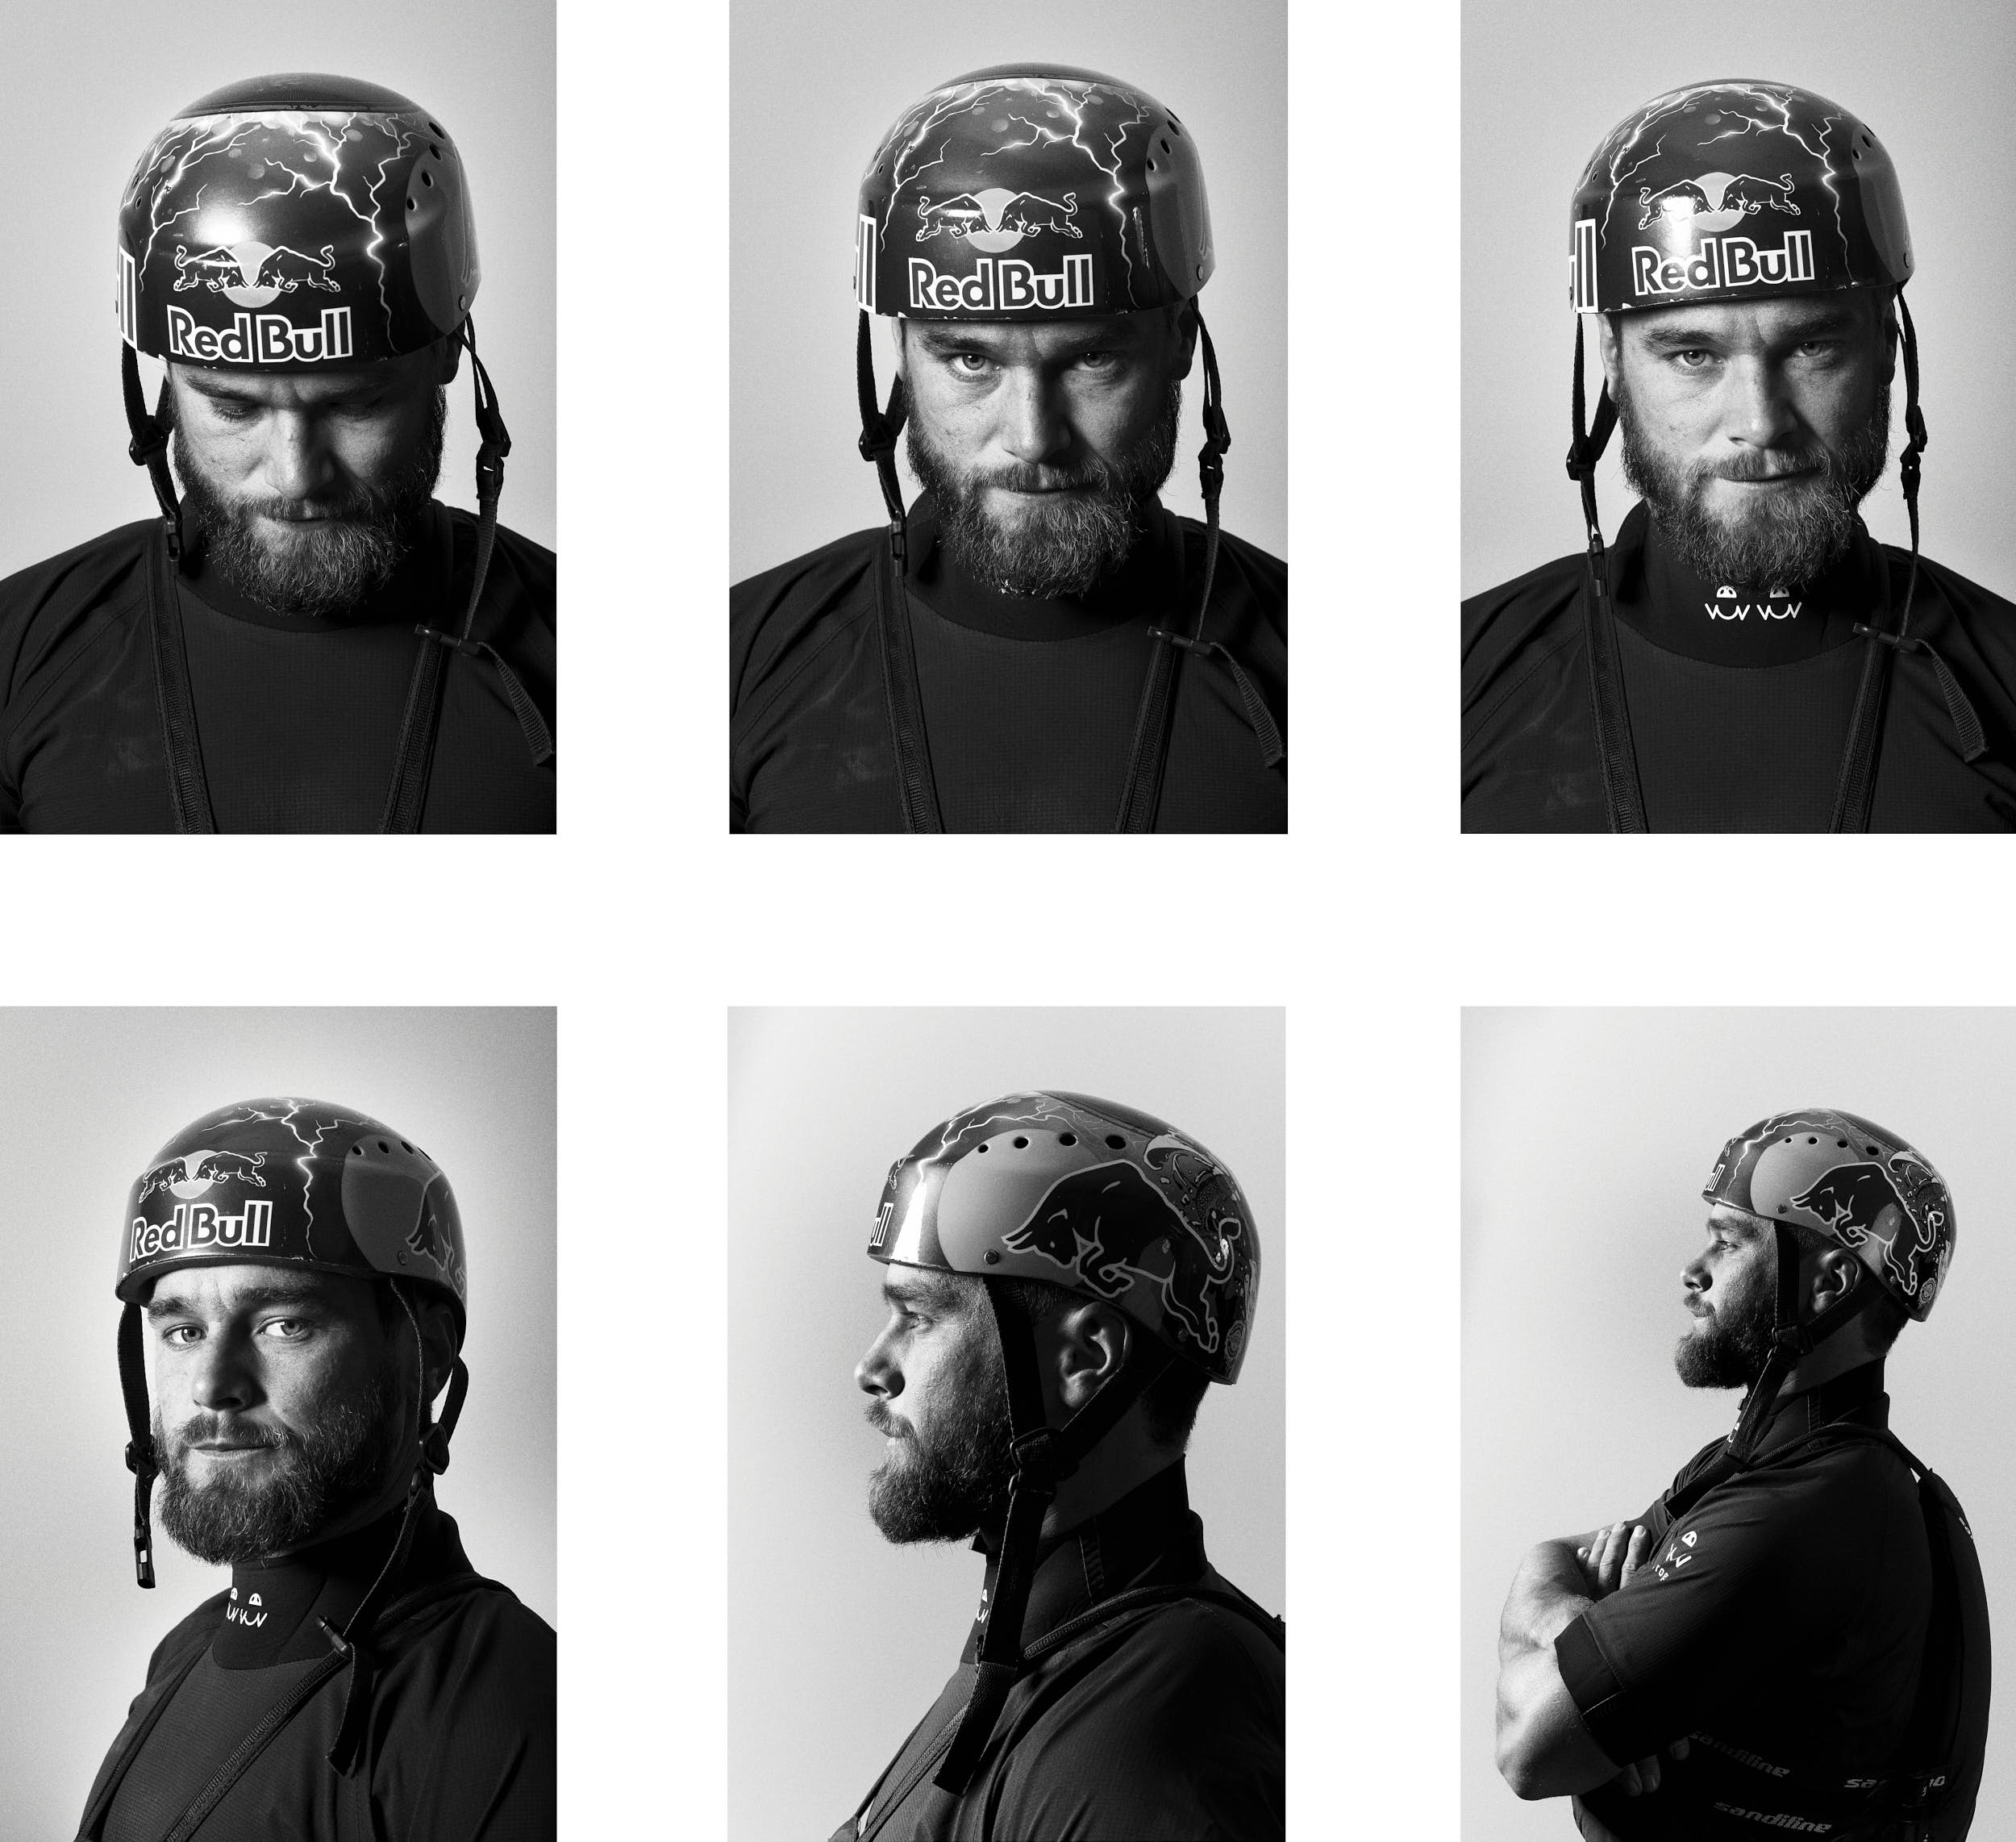 Six black and white portraits of a professional slalom canoeist arranged in a grid.